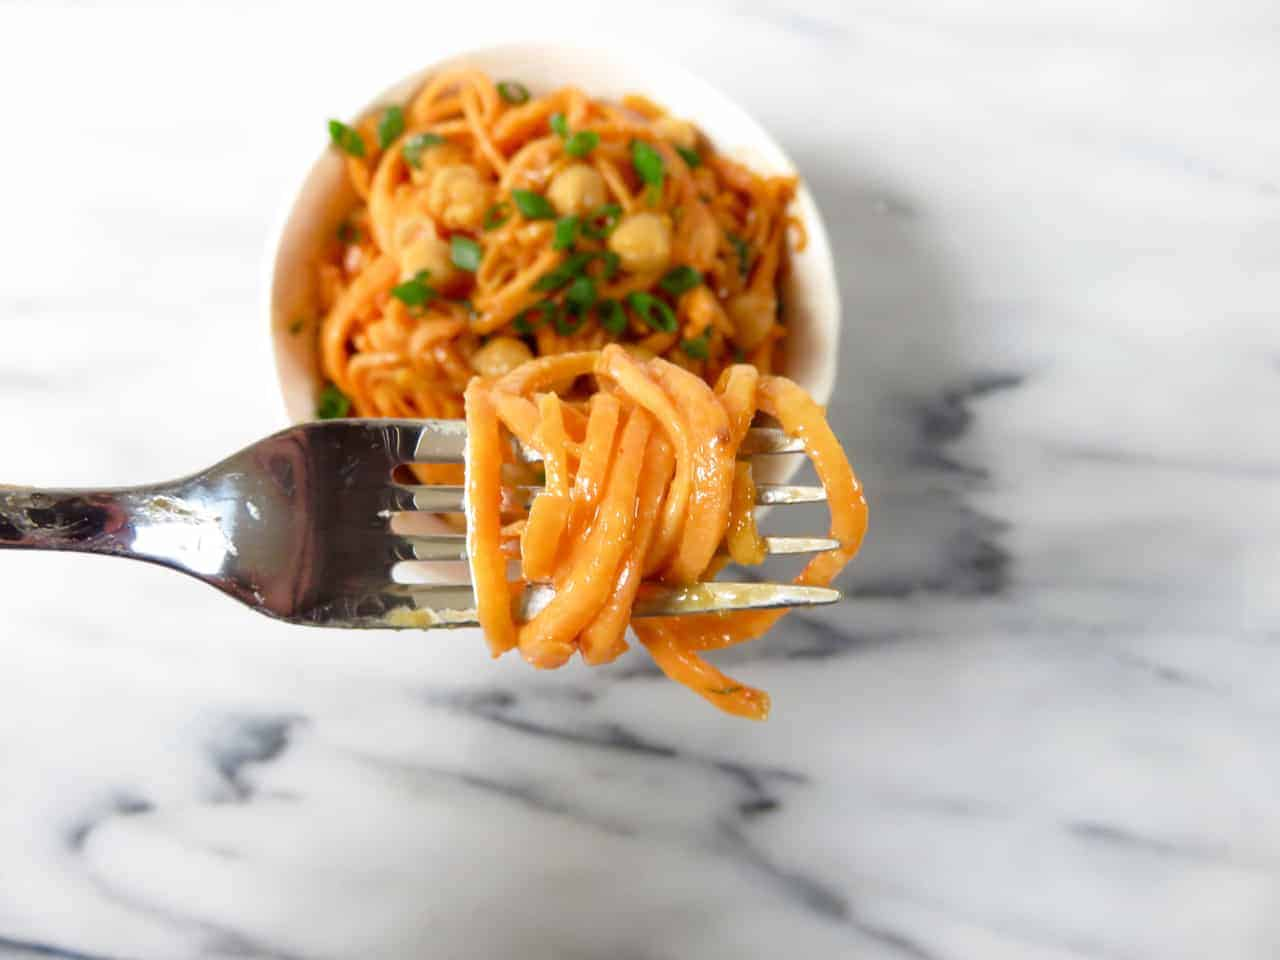 Sweet Potato Noodles with Peanut Sauce